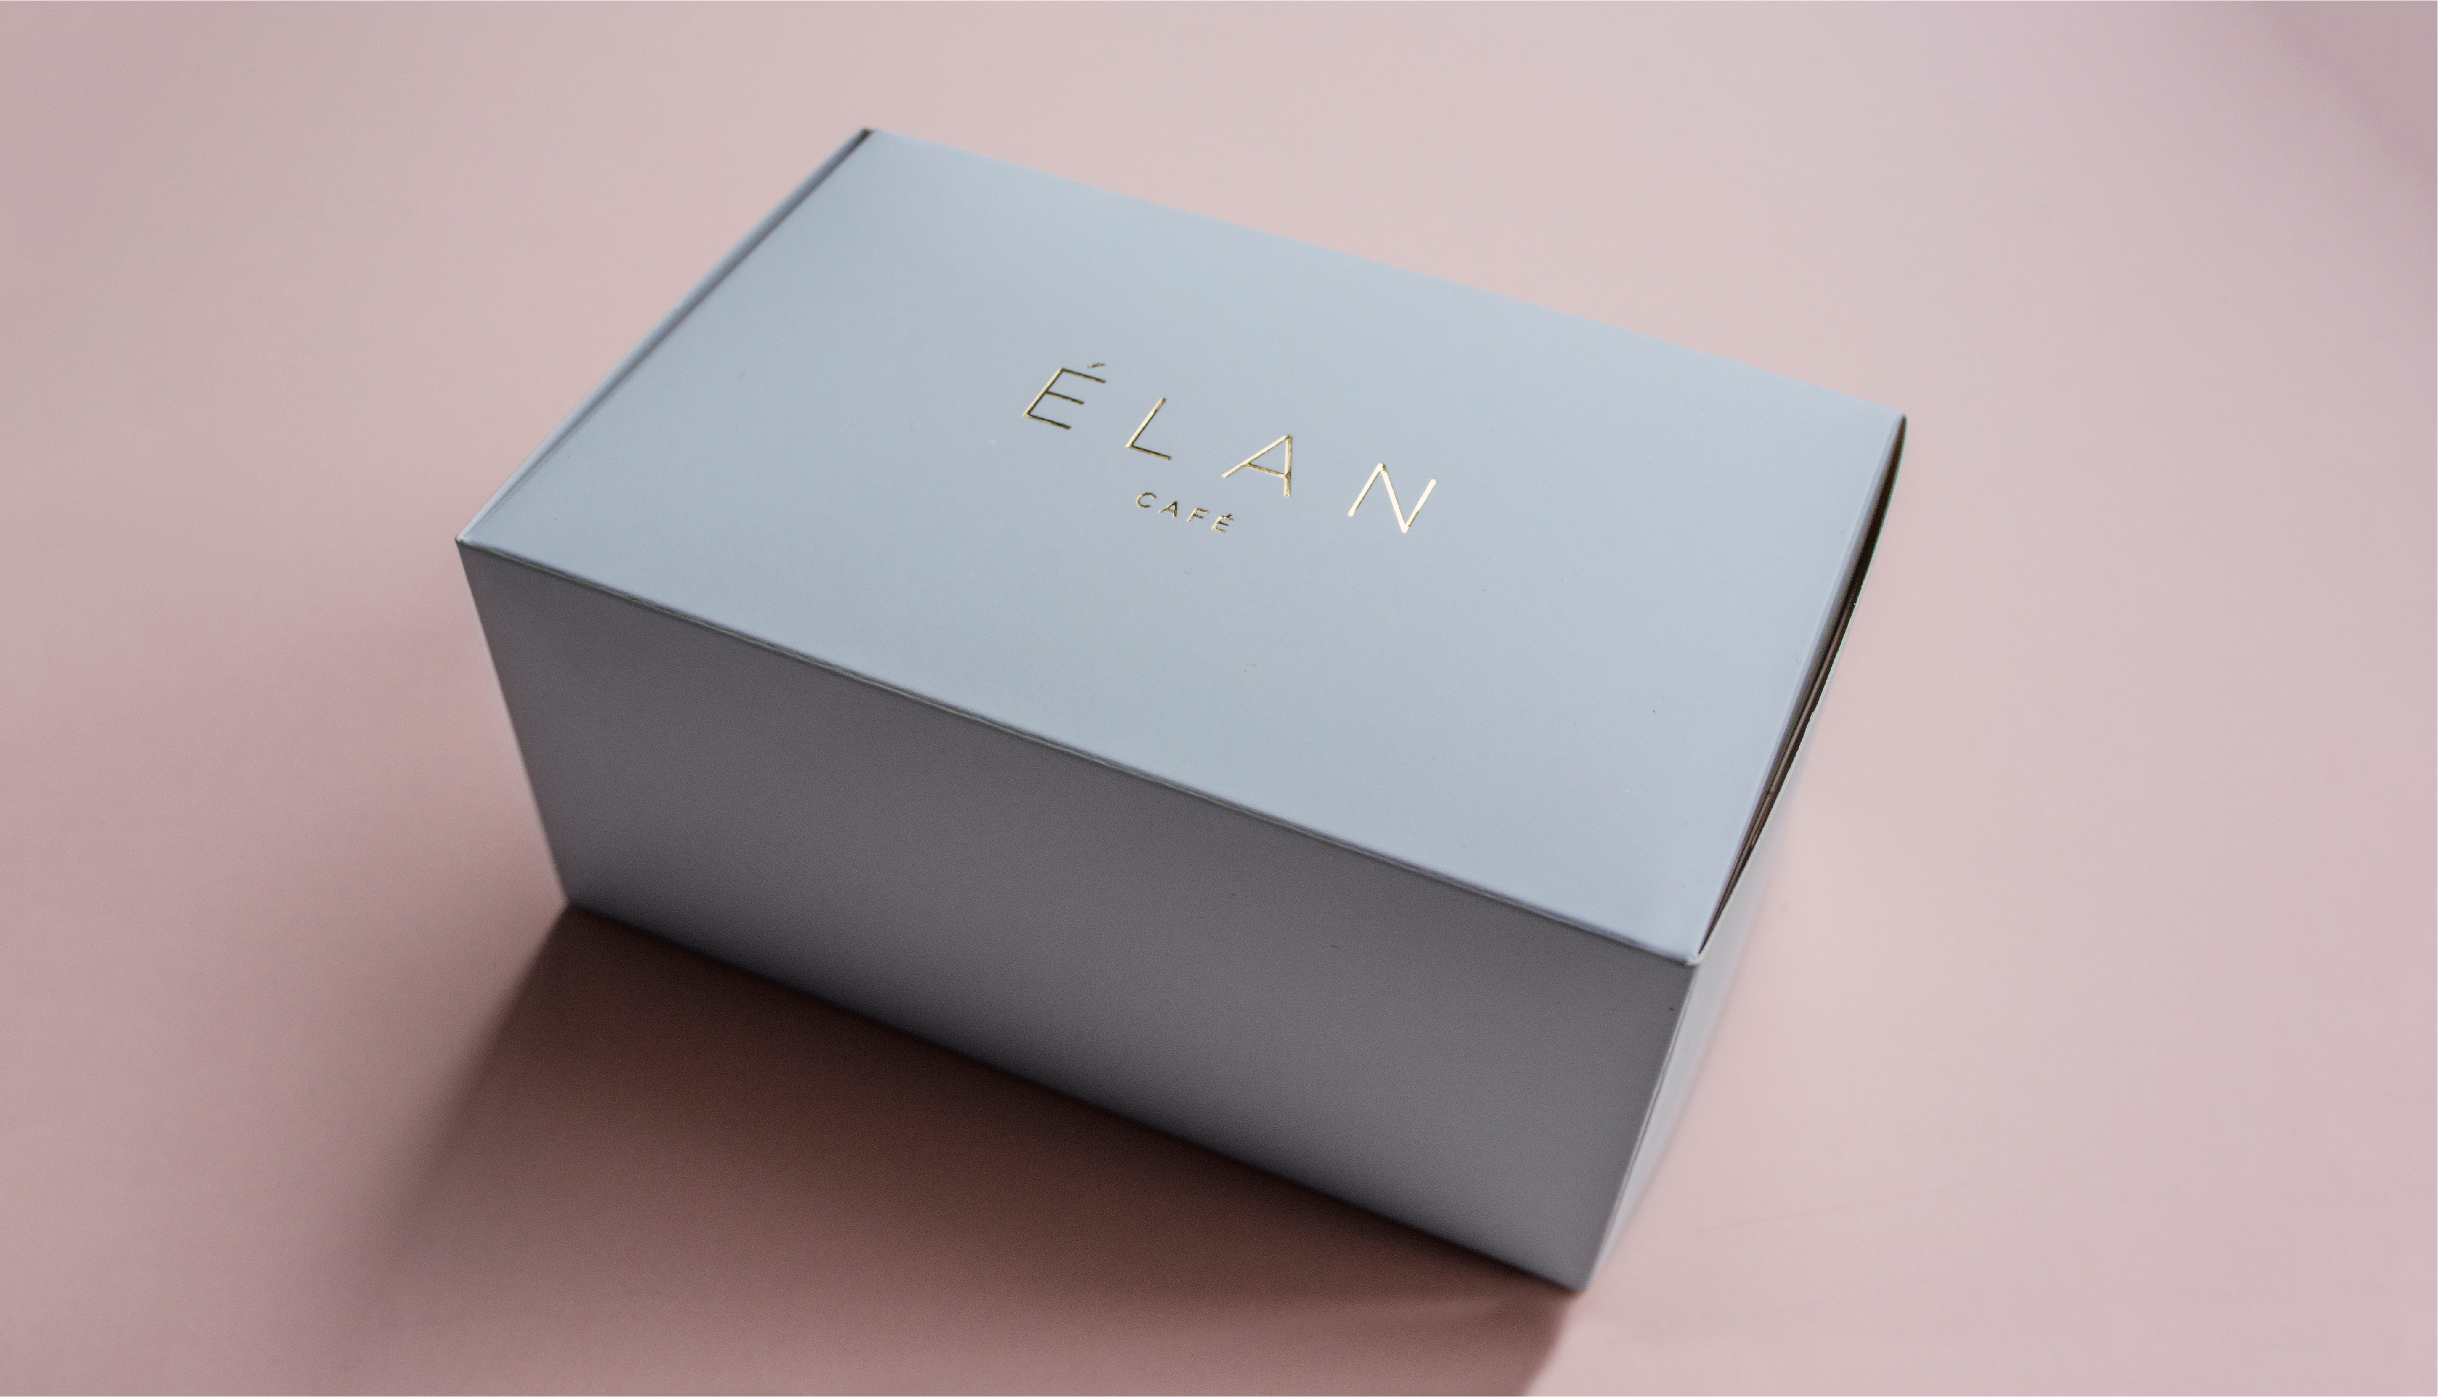 Branding and packaging for cake box for Elan Café